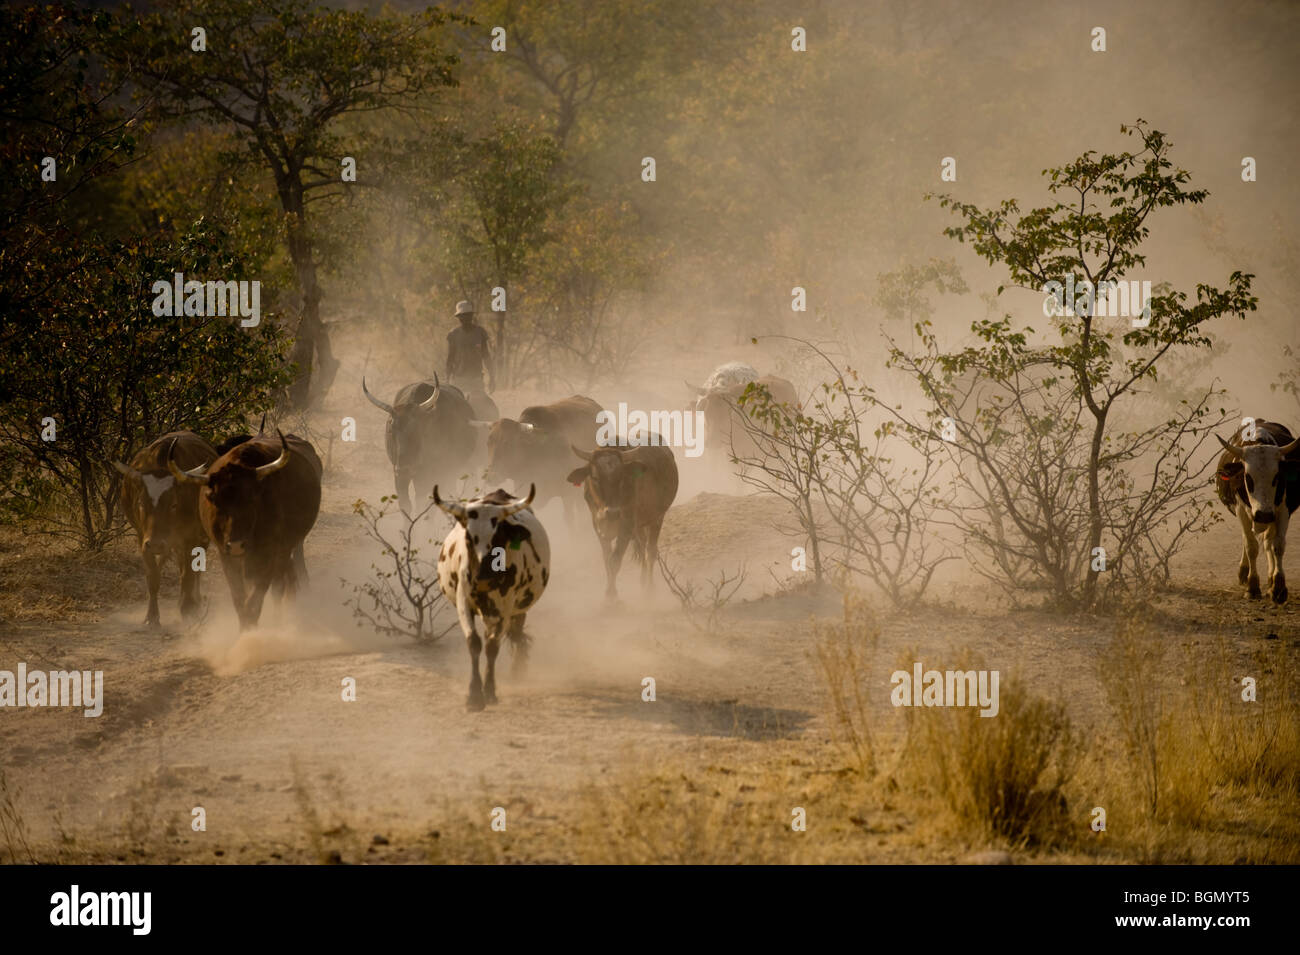 Driving cattle, near Opuwo, Northern Namibia - Stock Image